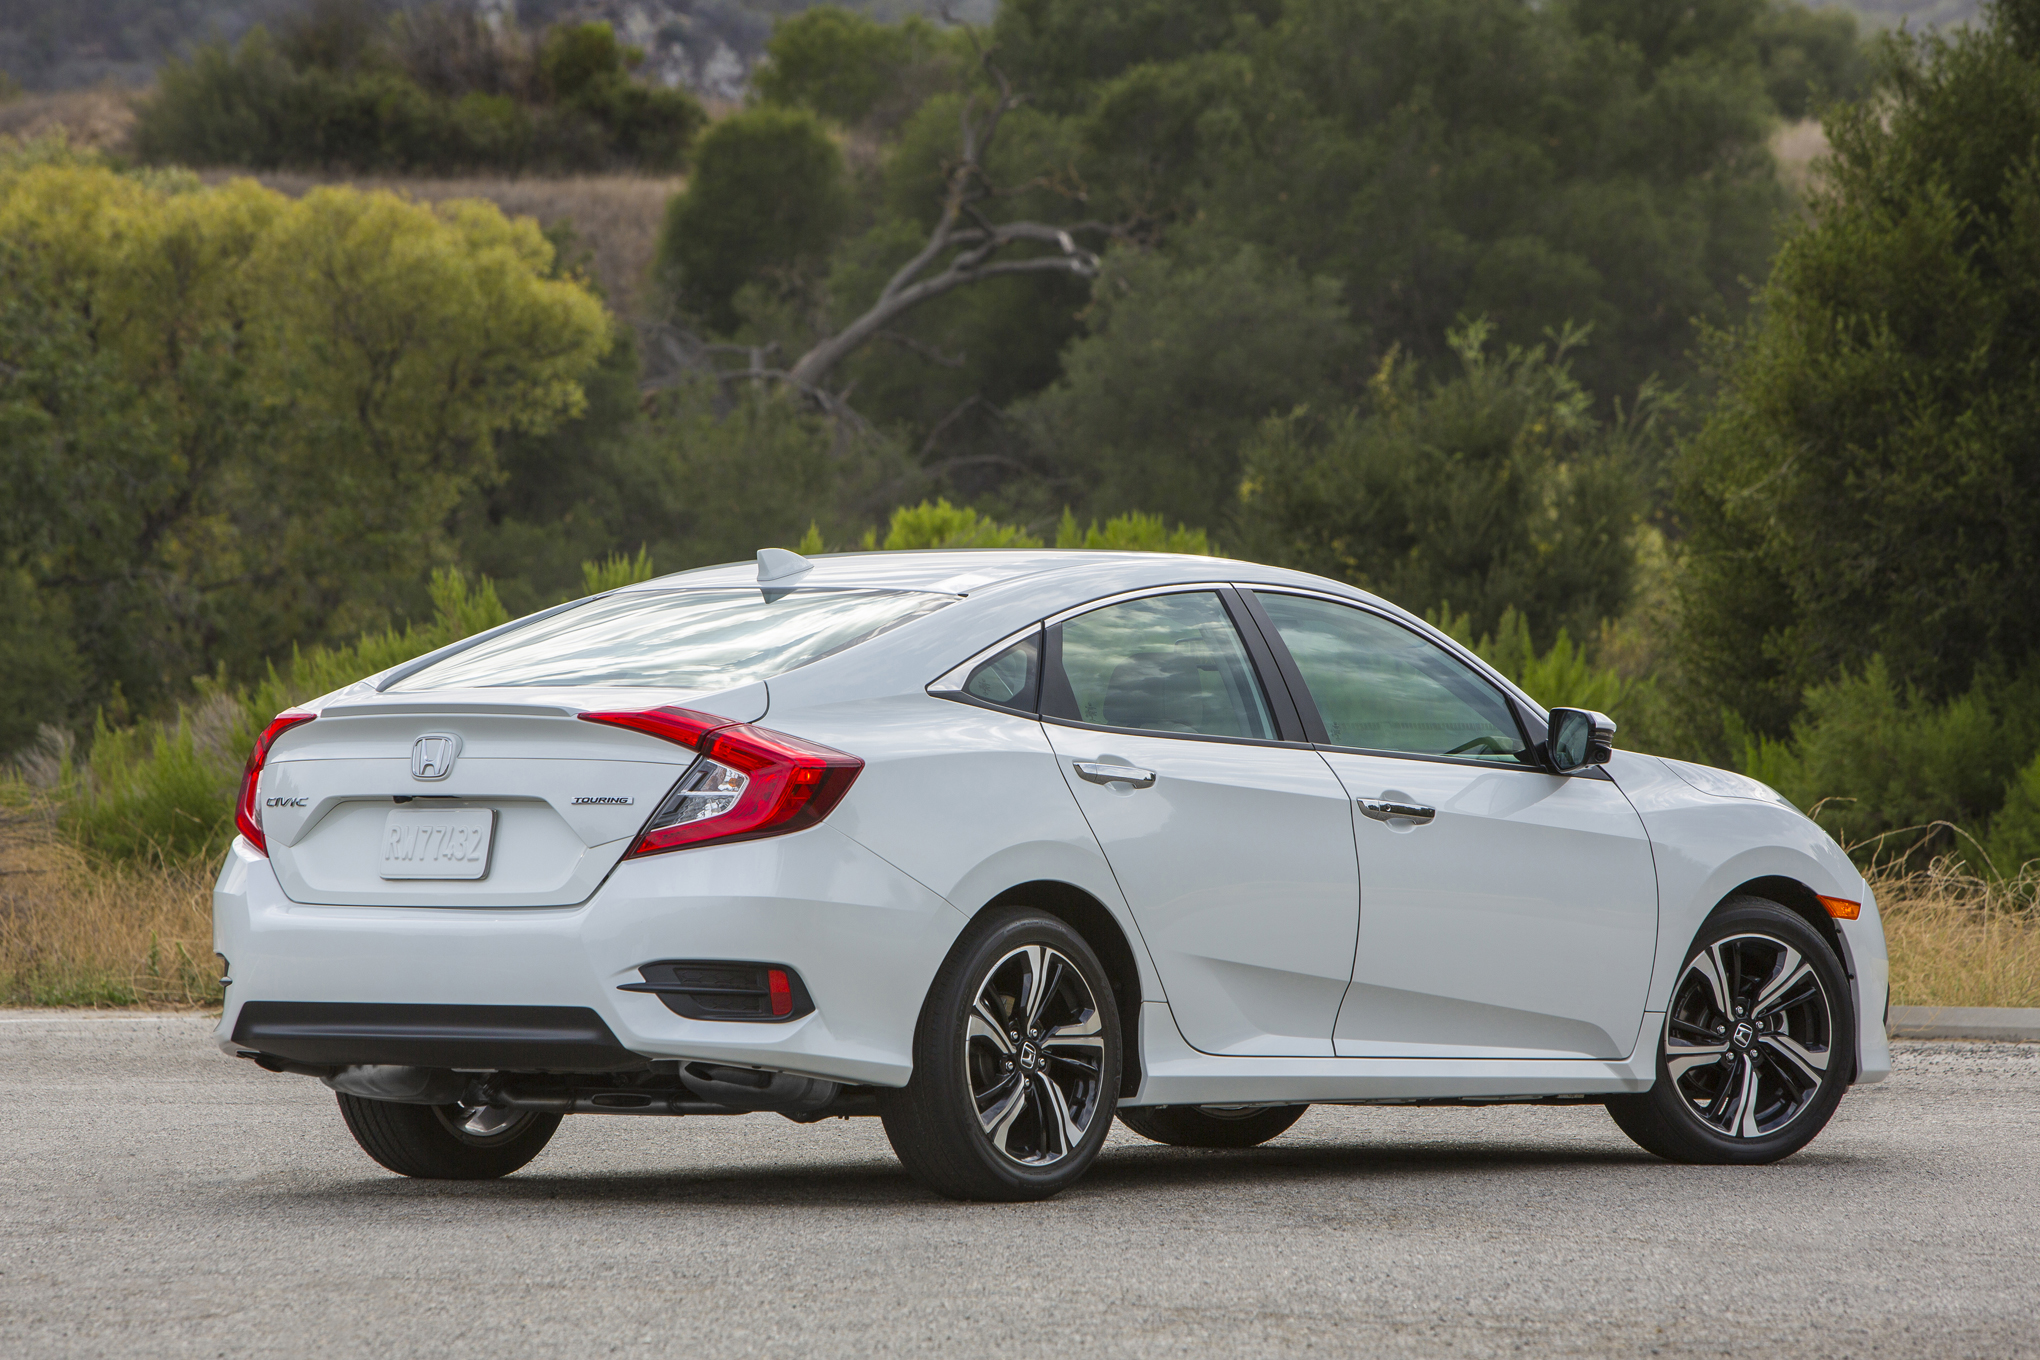 2016 Honda Civic Rear Profile